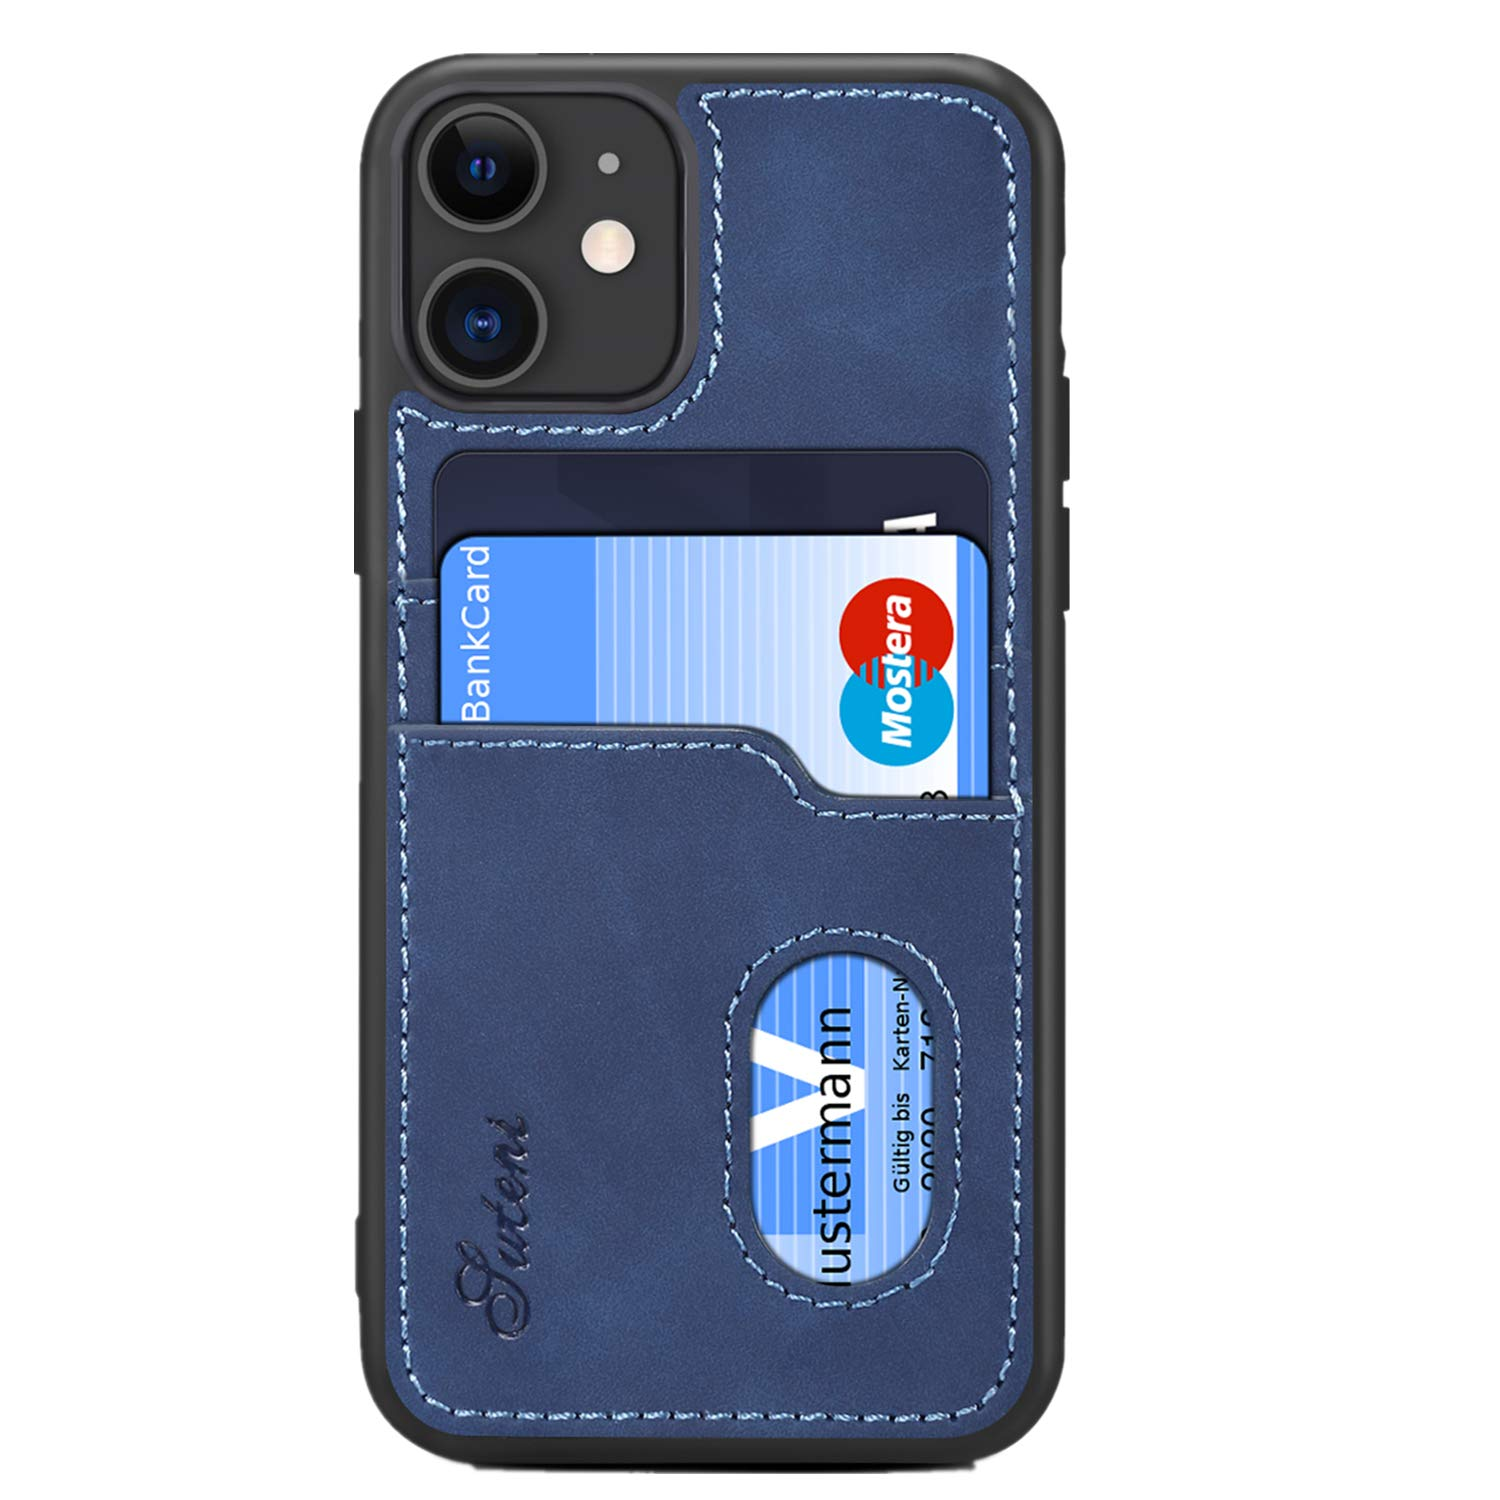 SUTENI iPhone 11 Wallet Case, iPhone 11 Wallet Slim Case with Credit Card Holder, PU Leather Shockproof Wallet Case for iPhone 11 (2019) 6.1 inch (Blue)